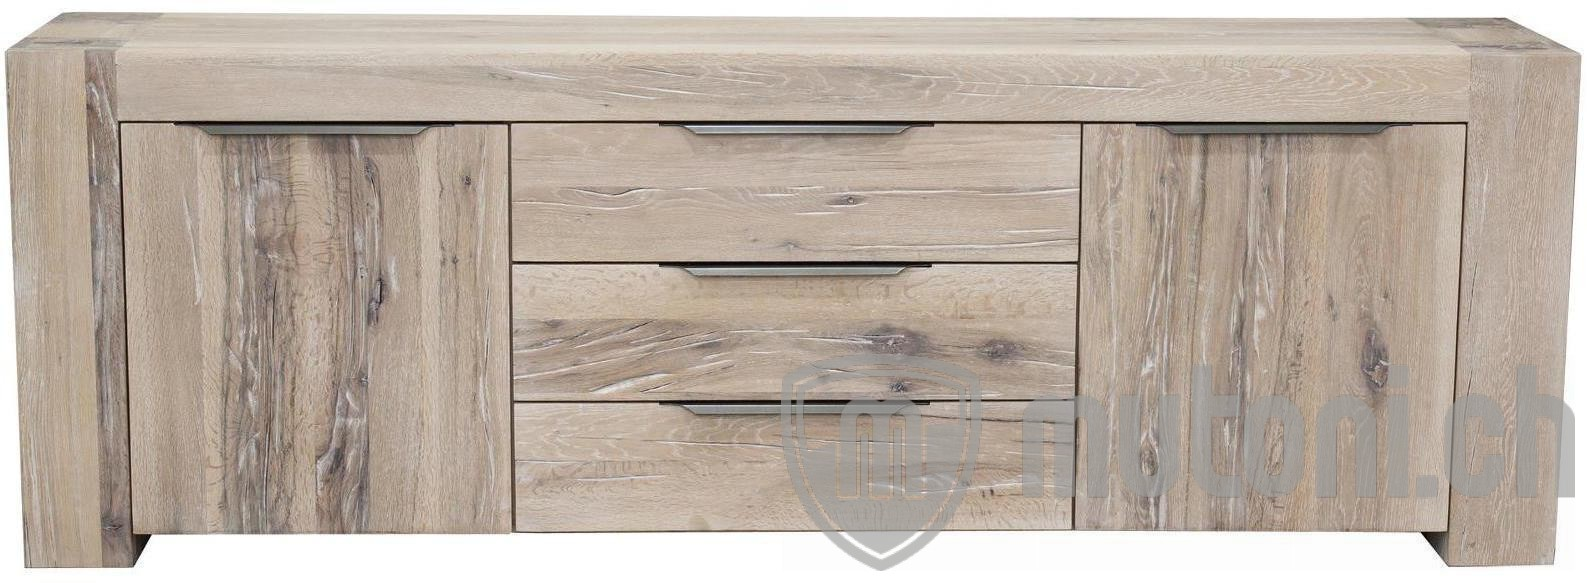 sideboard wyoming eiche rustikal mutoni wood mutoni. Black Bedroom Furniture Sets. Home Design Ideas